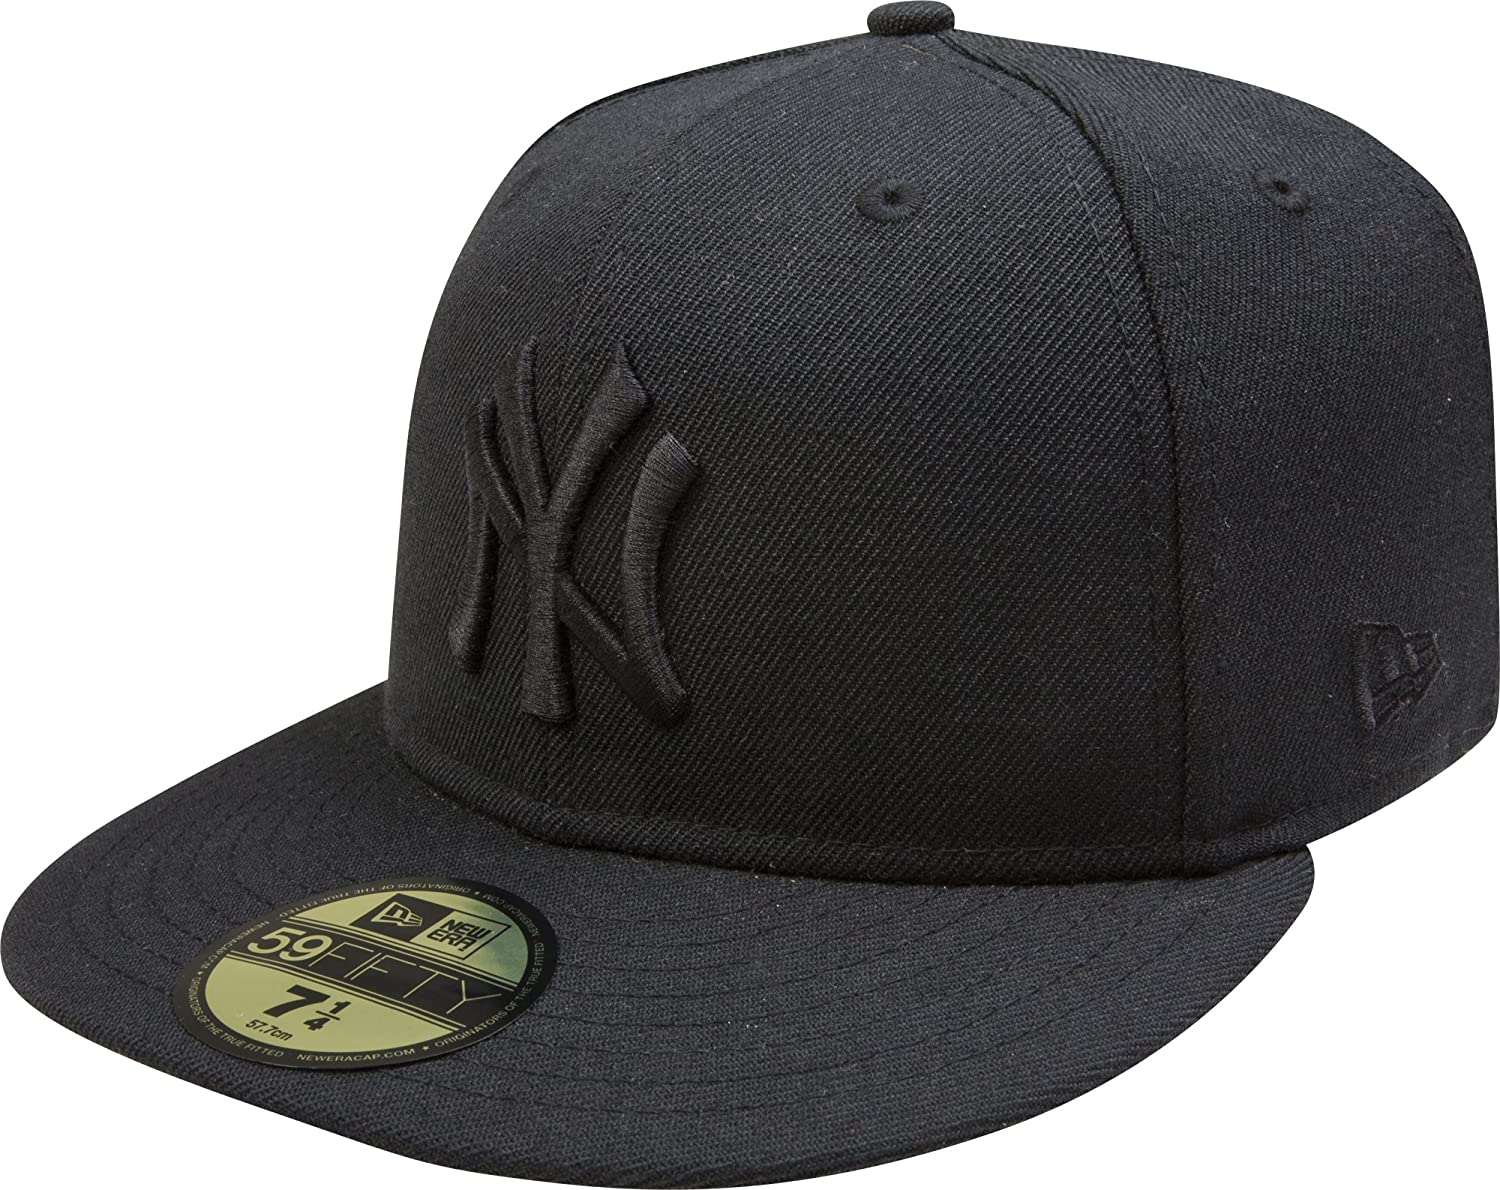 Amazon.com  New York Yankees Black On Black 59FIFTY Cap   Hat  Sports    Outdoors 5f95cfd44e